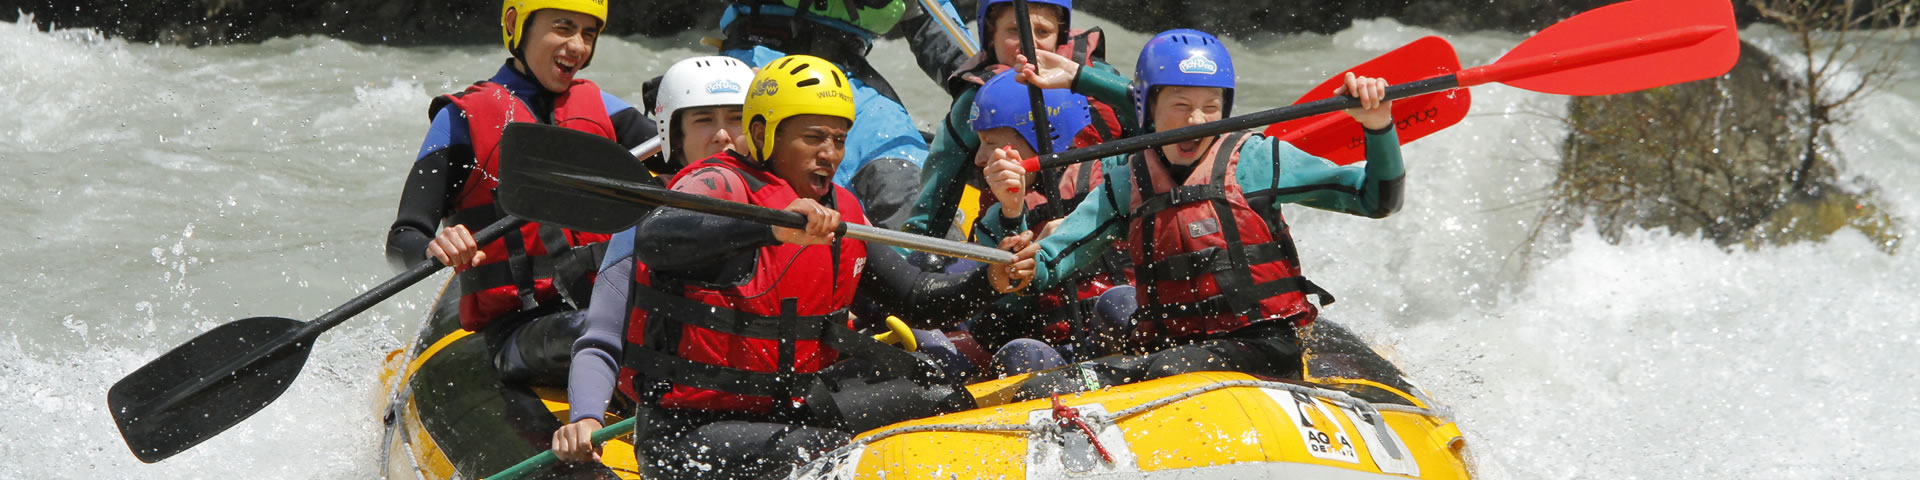 White water rafting in the Durance